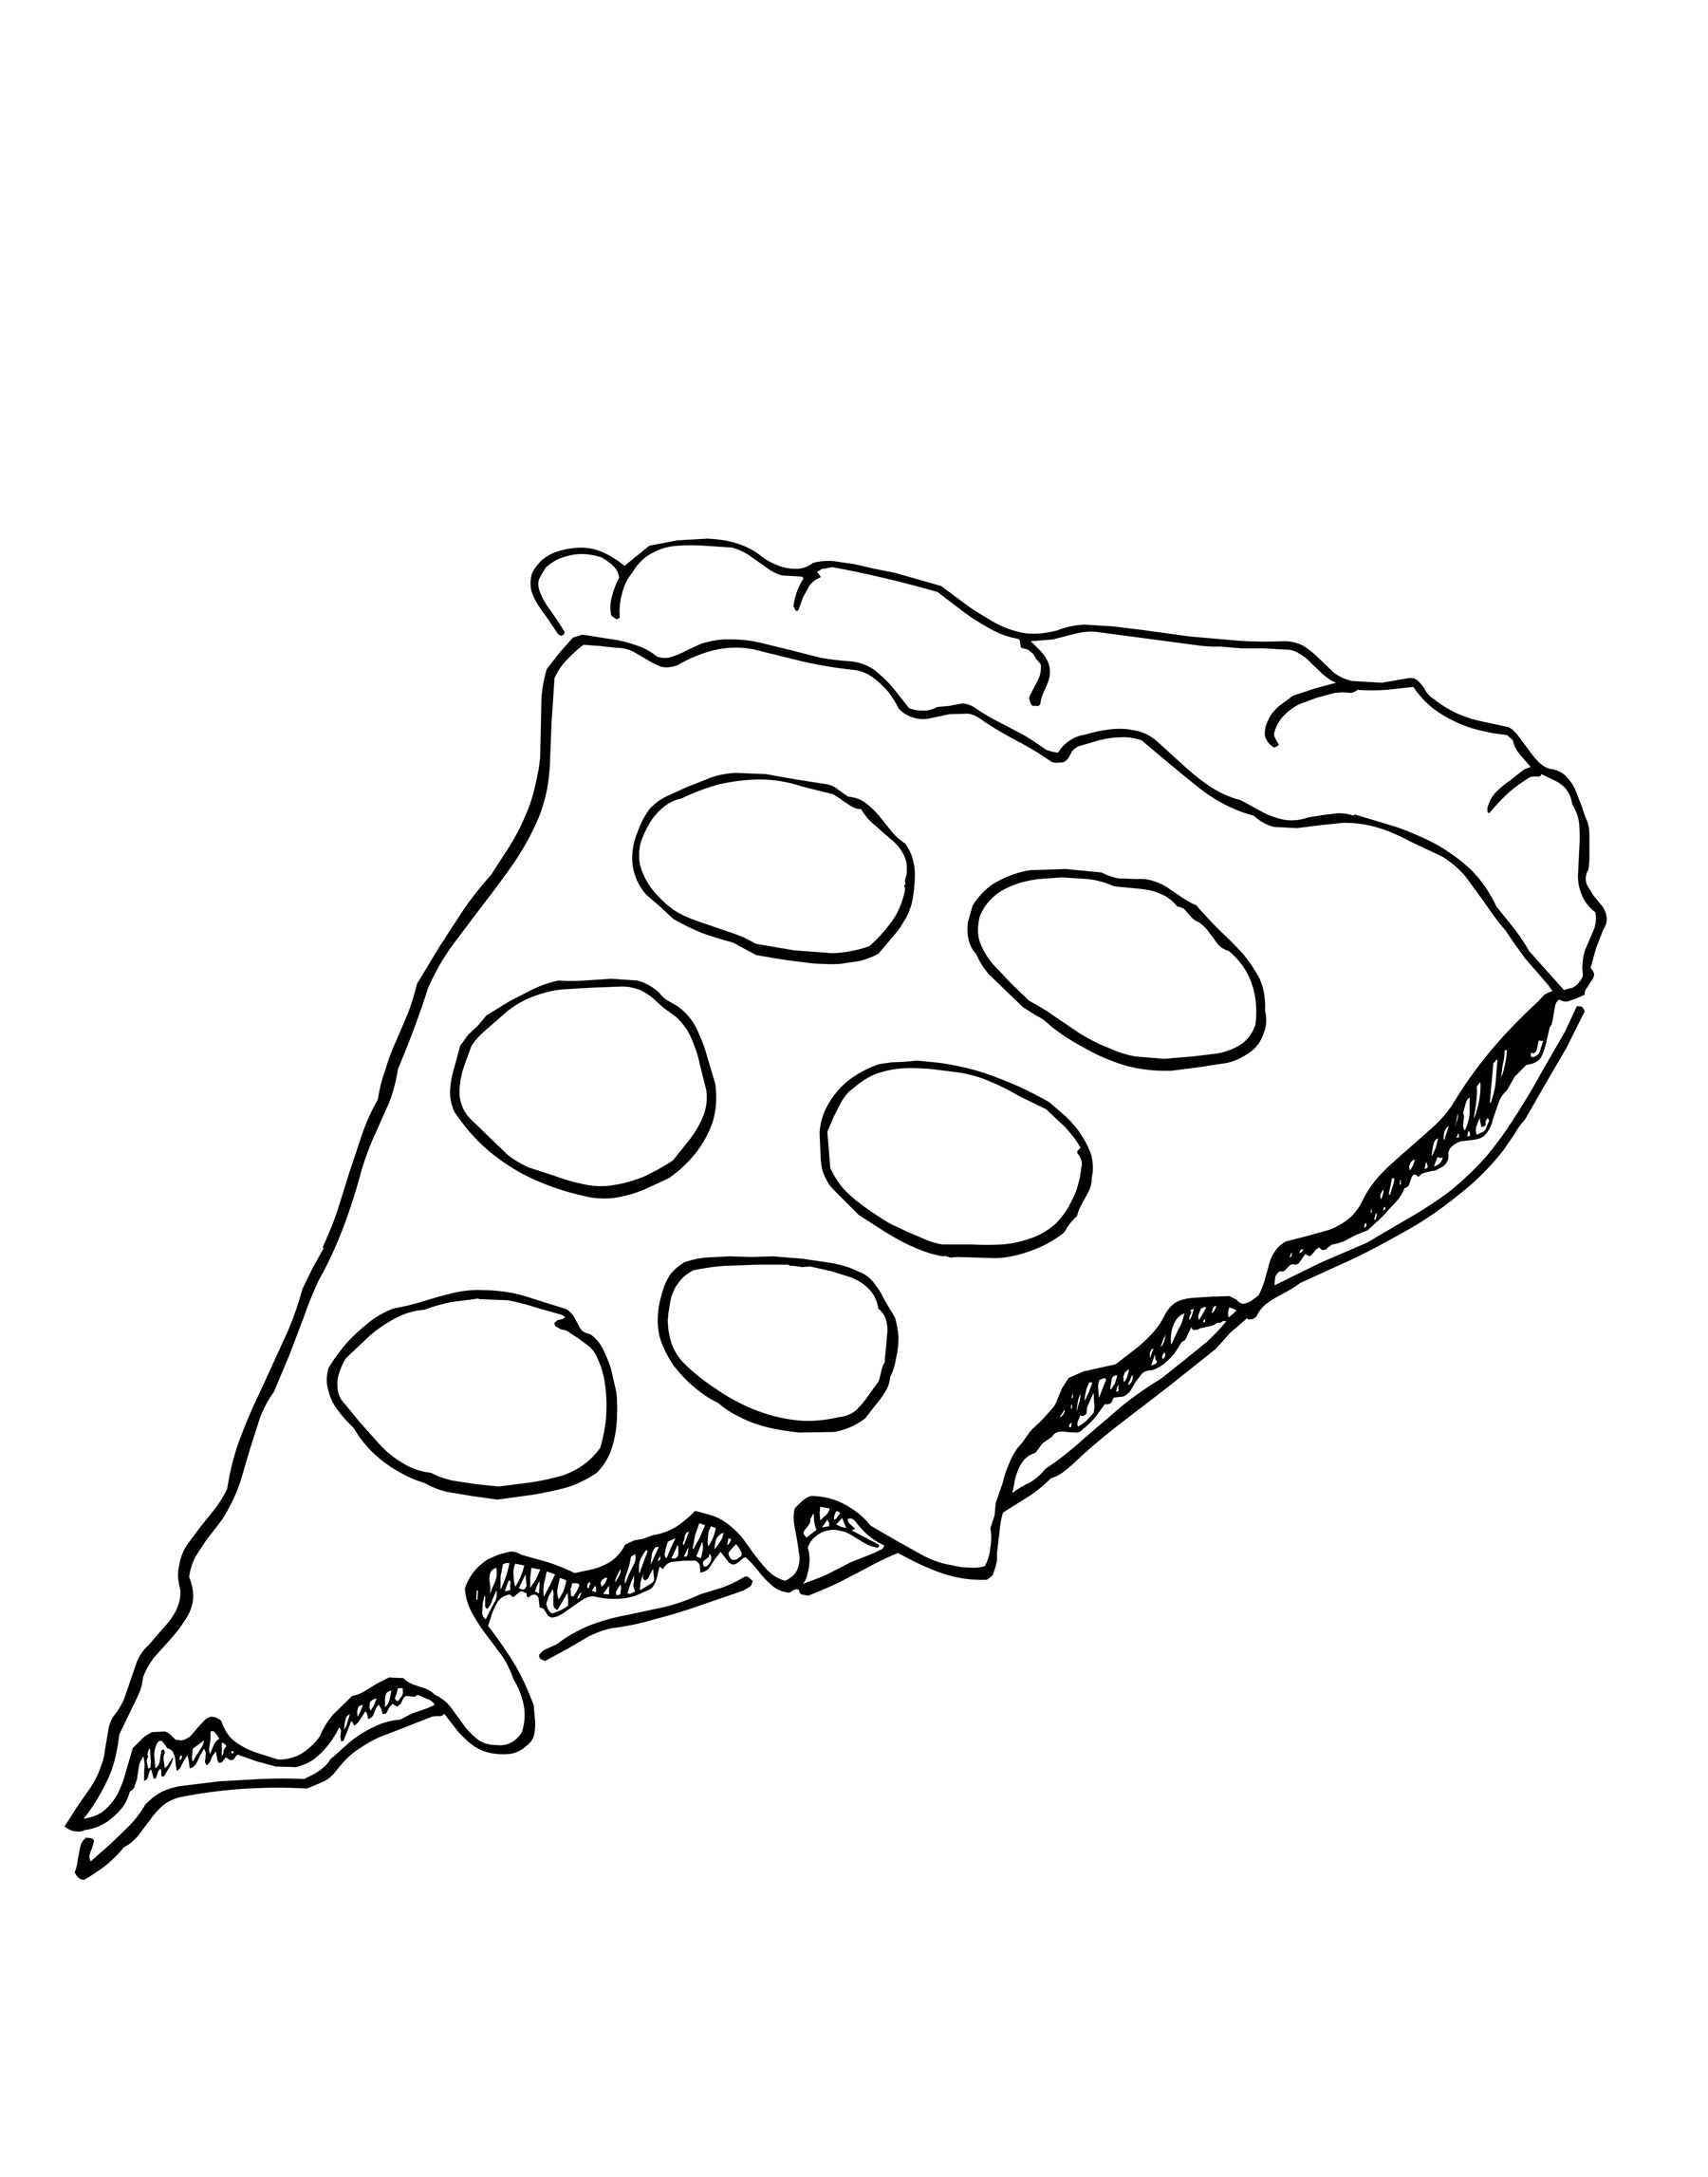 Is For Pizza Coloring Sheet : Pizza Coloring Pages for childrens printable for free